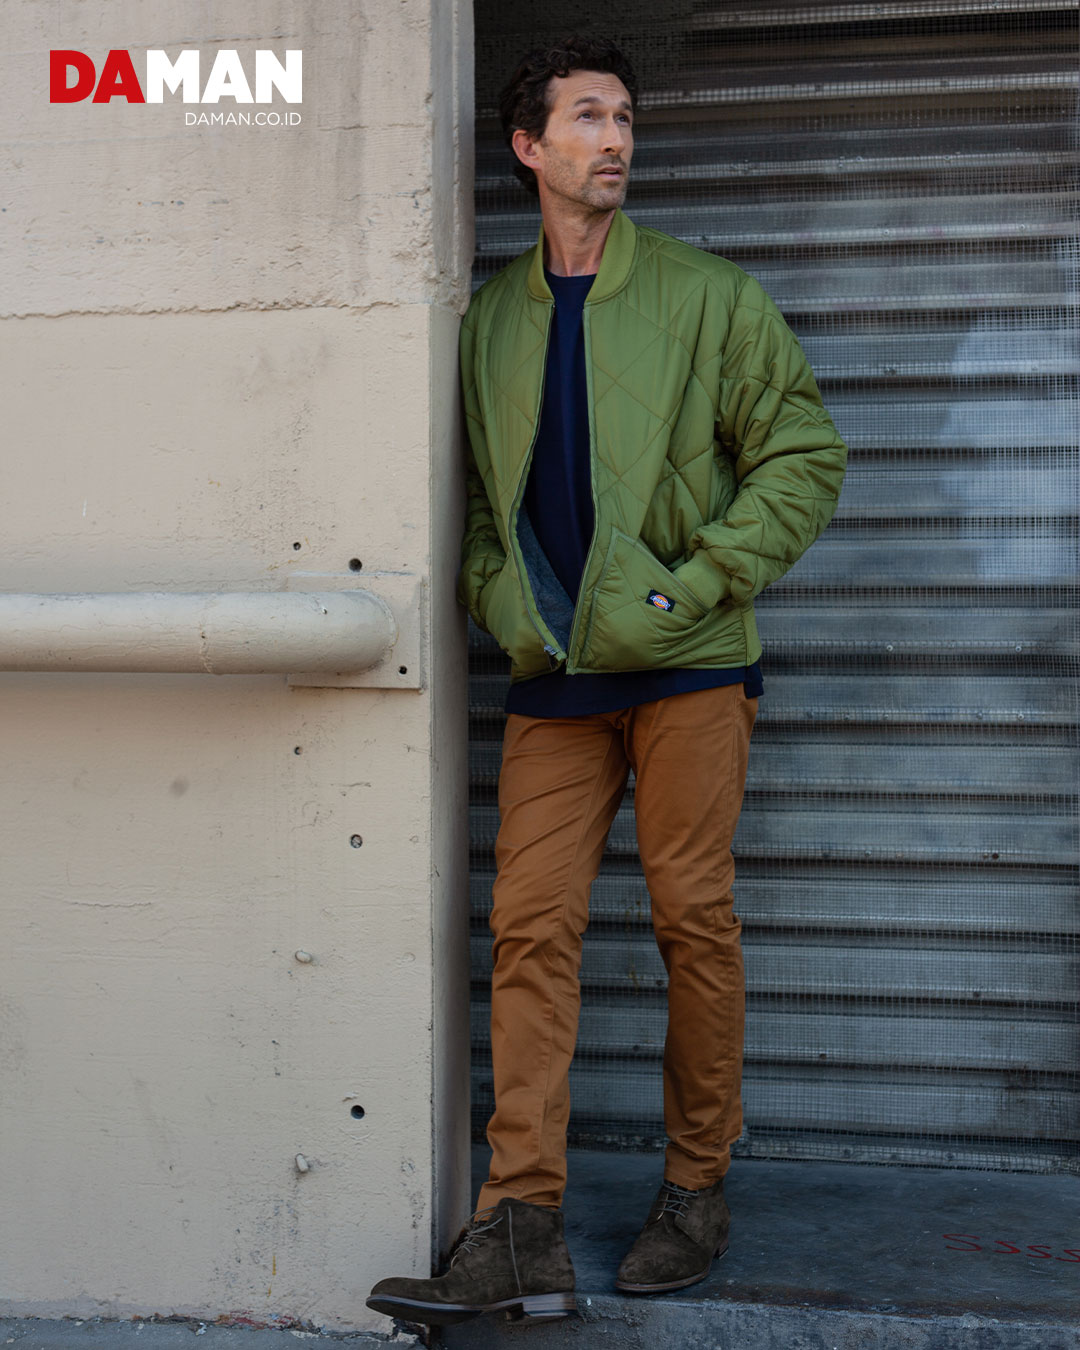 Jacket by dickies, t-shirt by y Jack, pants by dockers, shoes by Jean baptiste rautureau